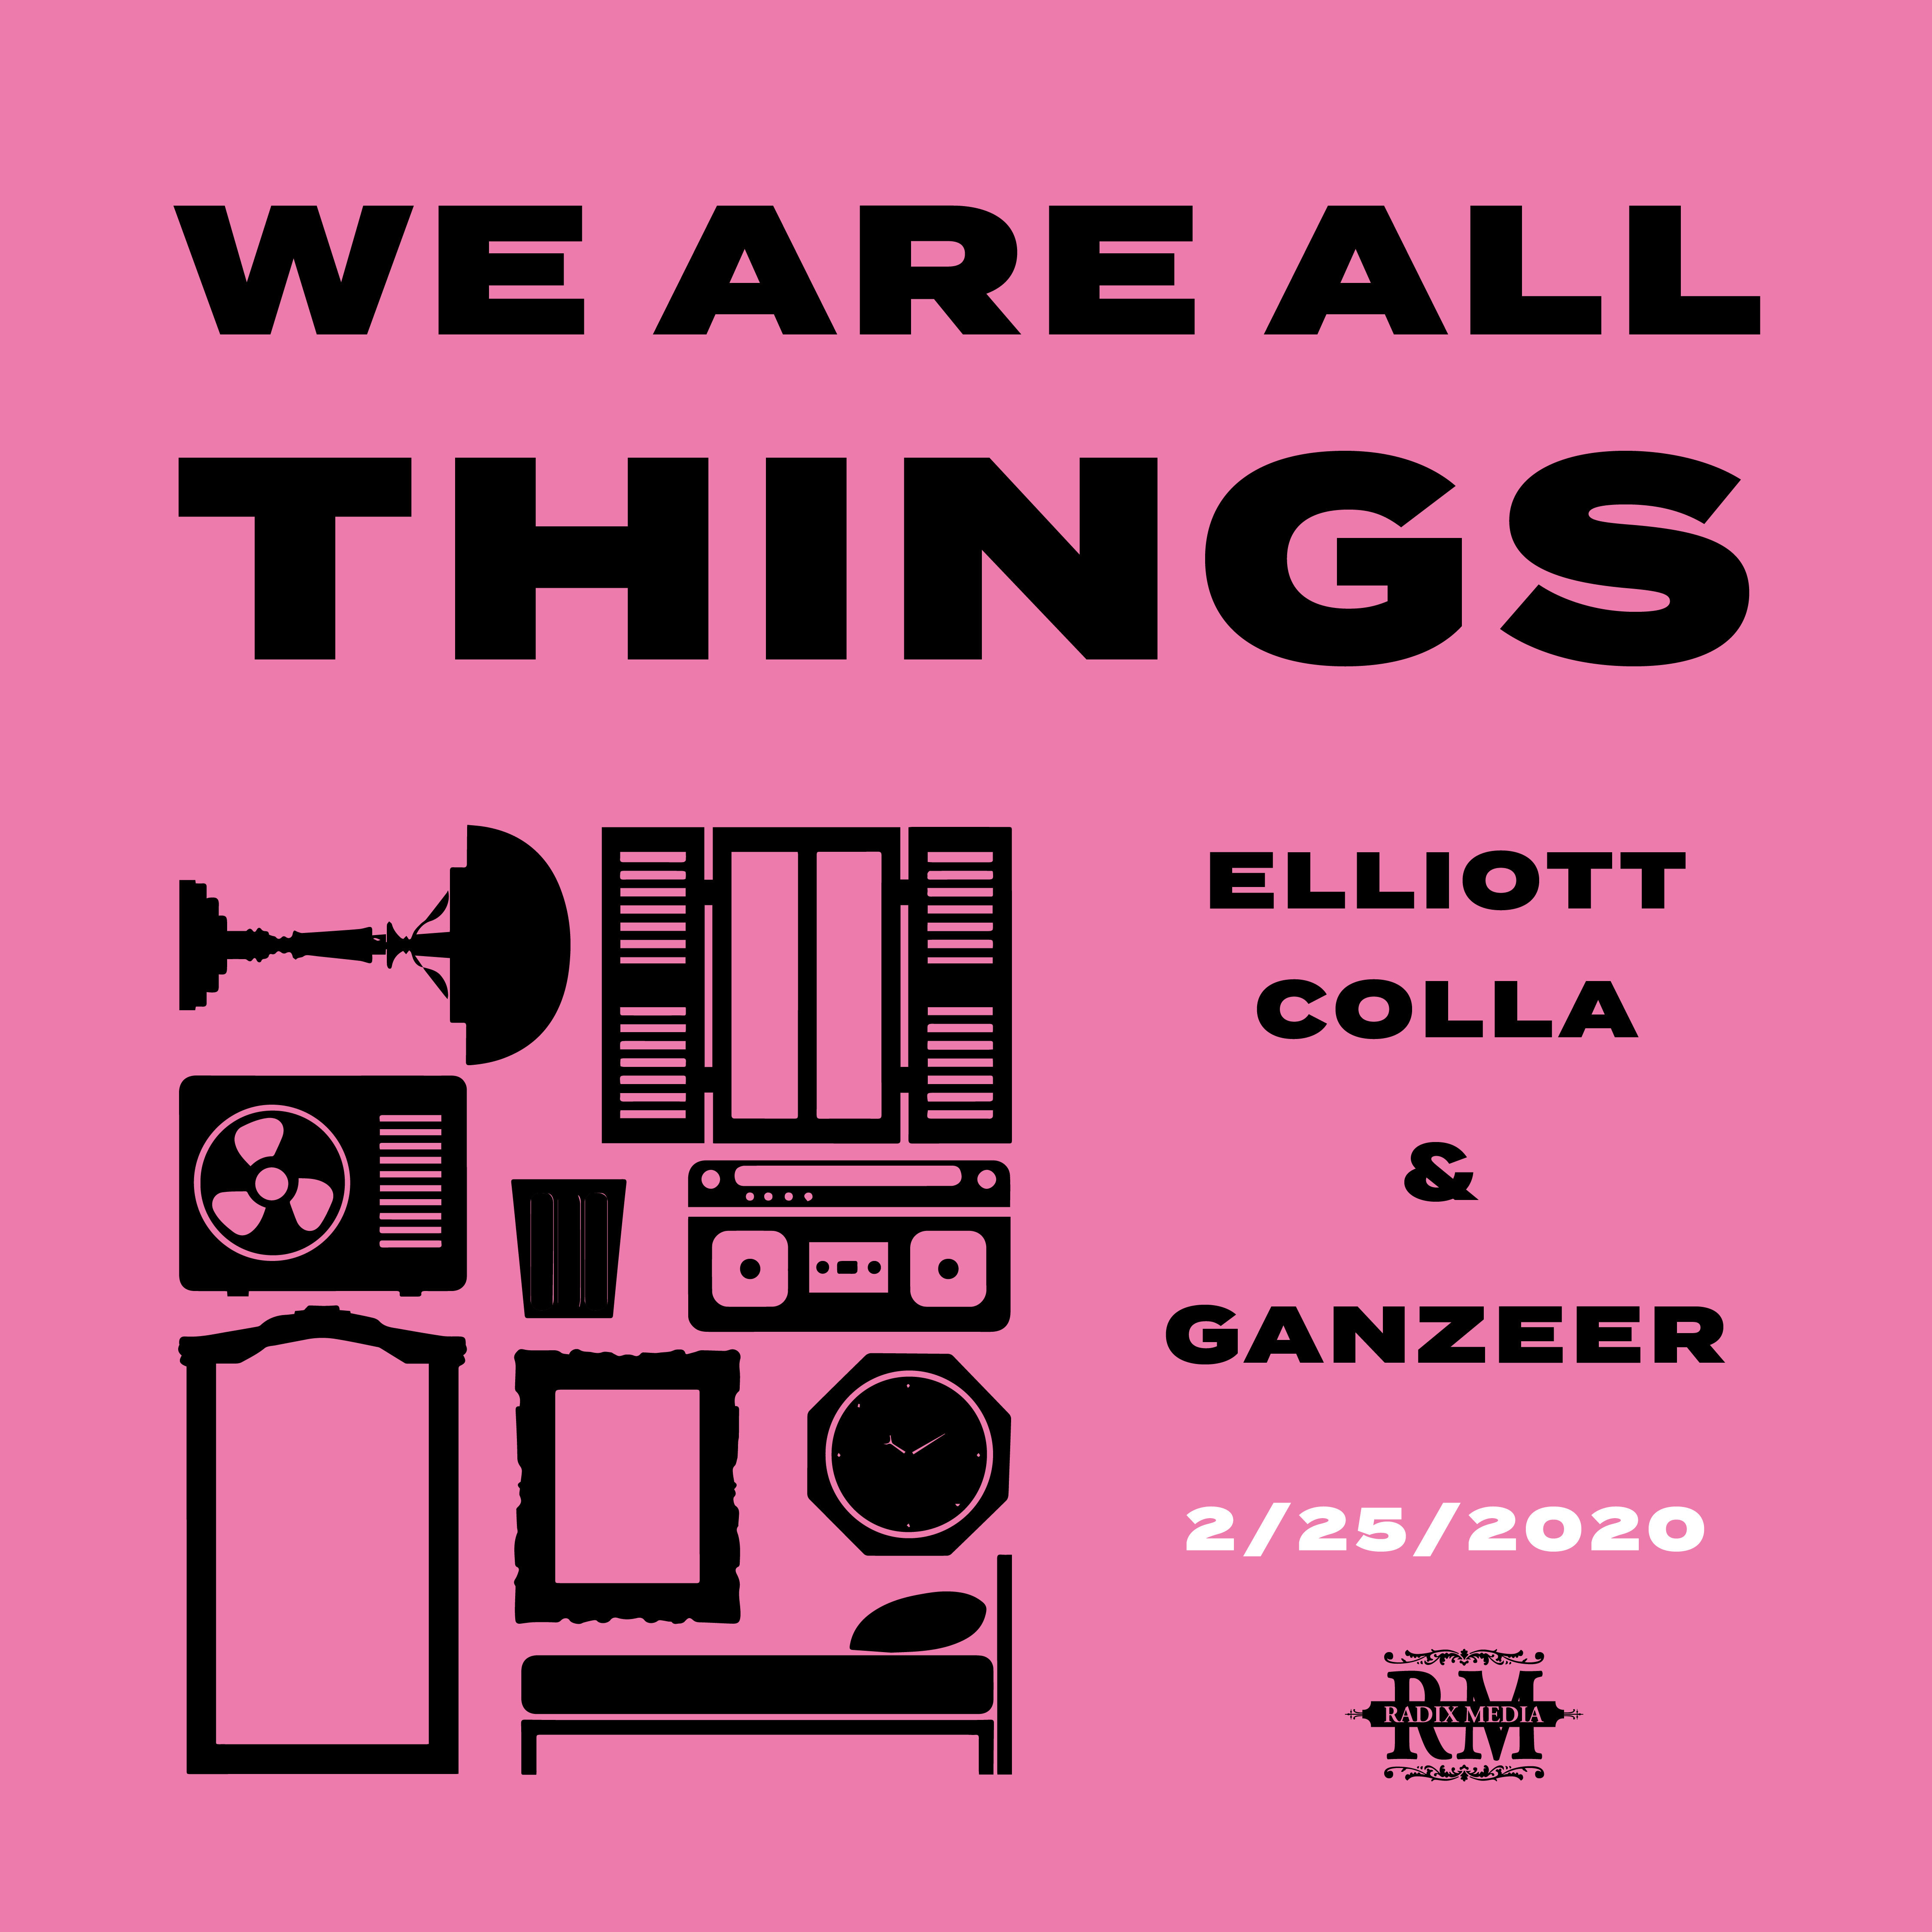 Announcing: WE ARE ALL THINGS by Elliott Colla & Ganzeer